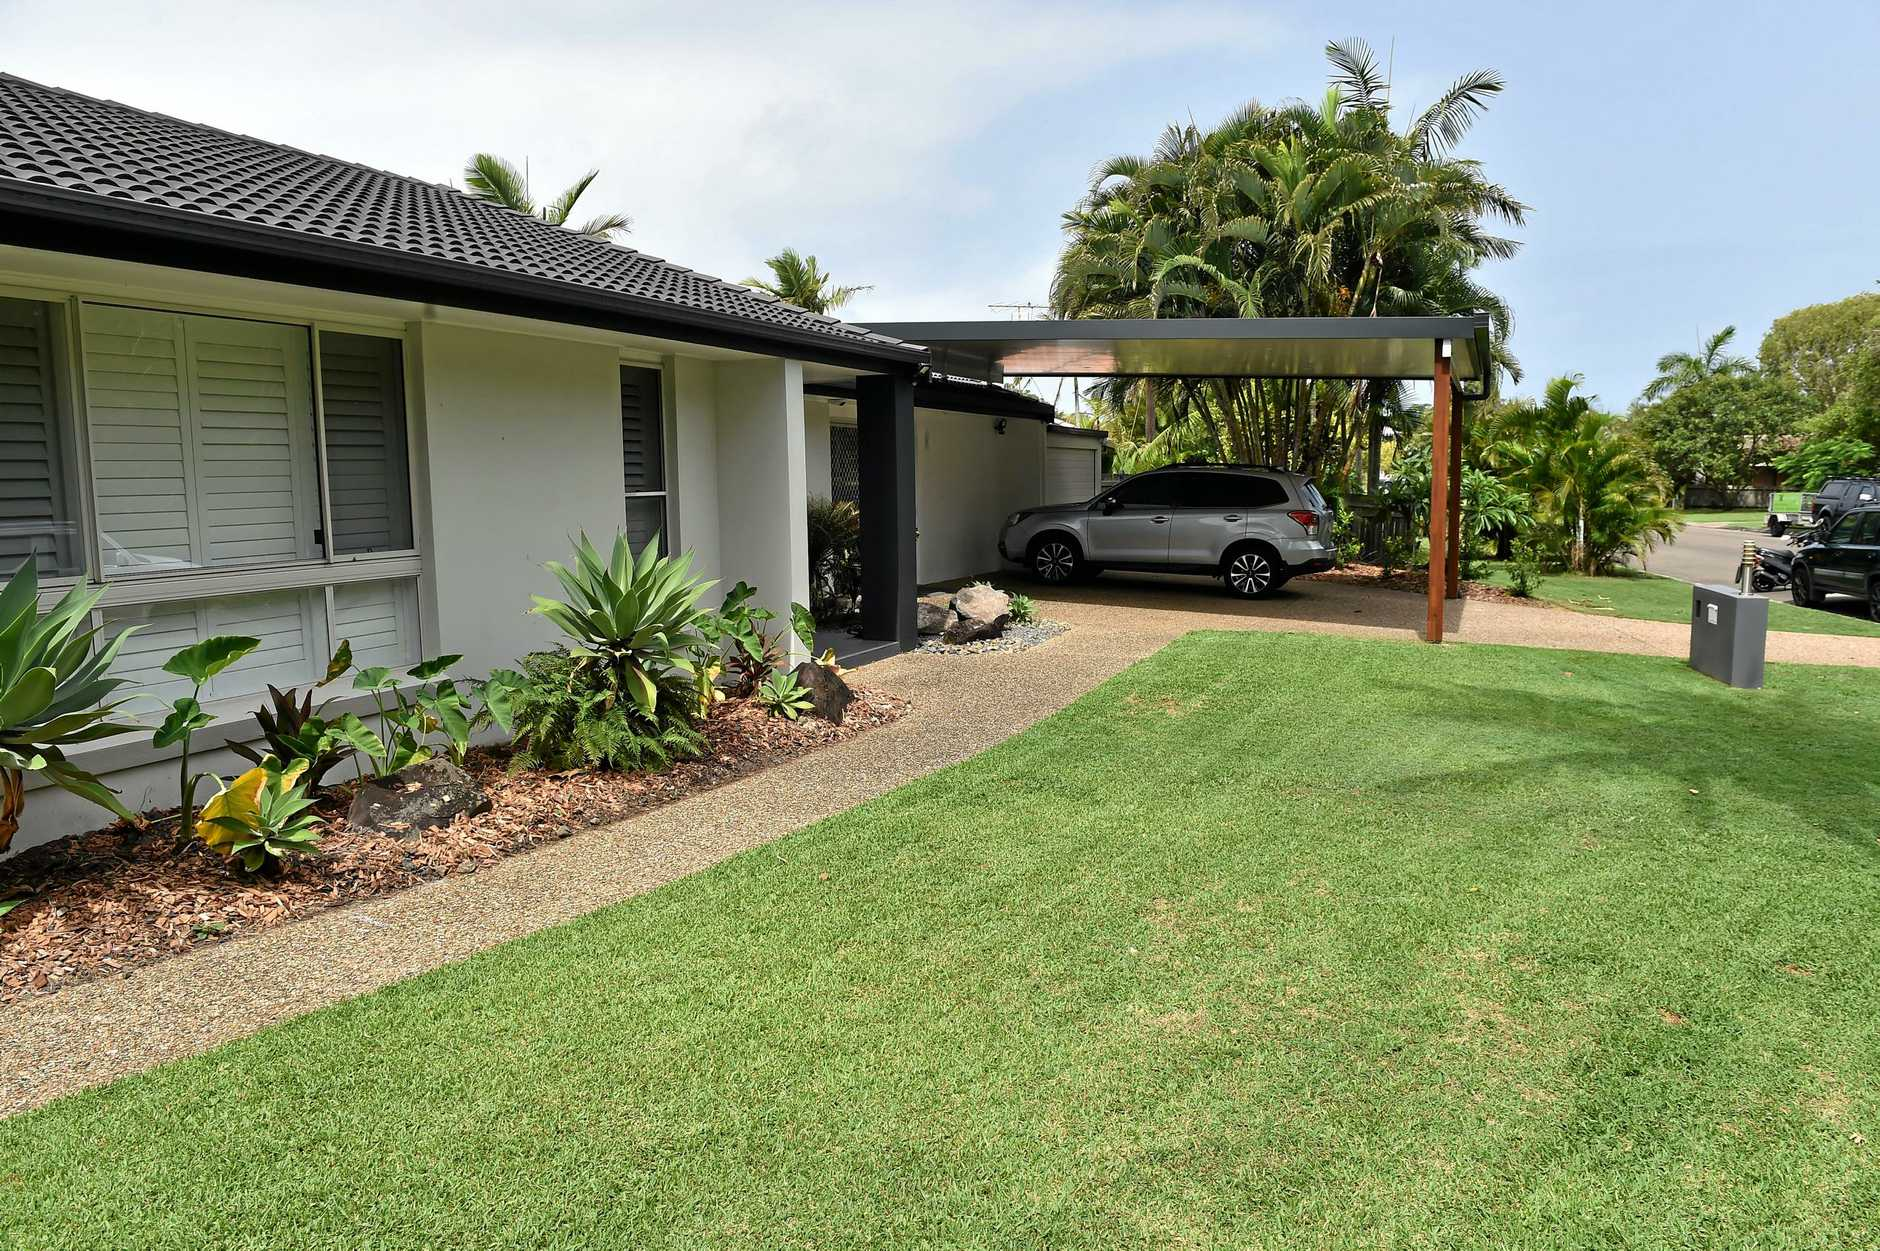 Nathan Slonim recently moved up from Sydney and is having a major drama with council over his carport. Neighbours have no issue with it, but council want him to concrete 95% of his front yard and move the carport in front of their bedroom, cant understand why theyre not promoting more green space.